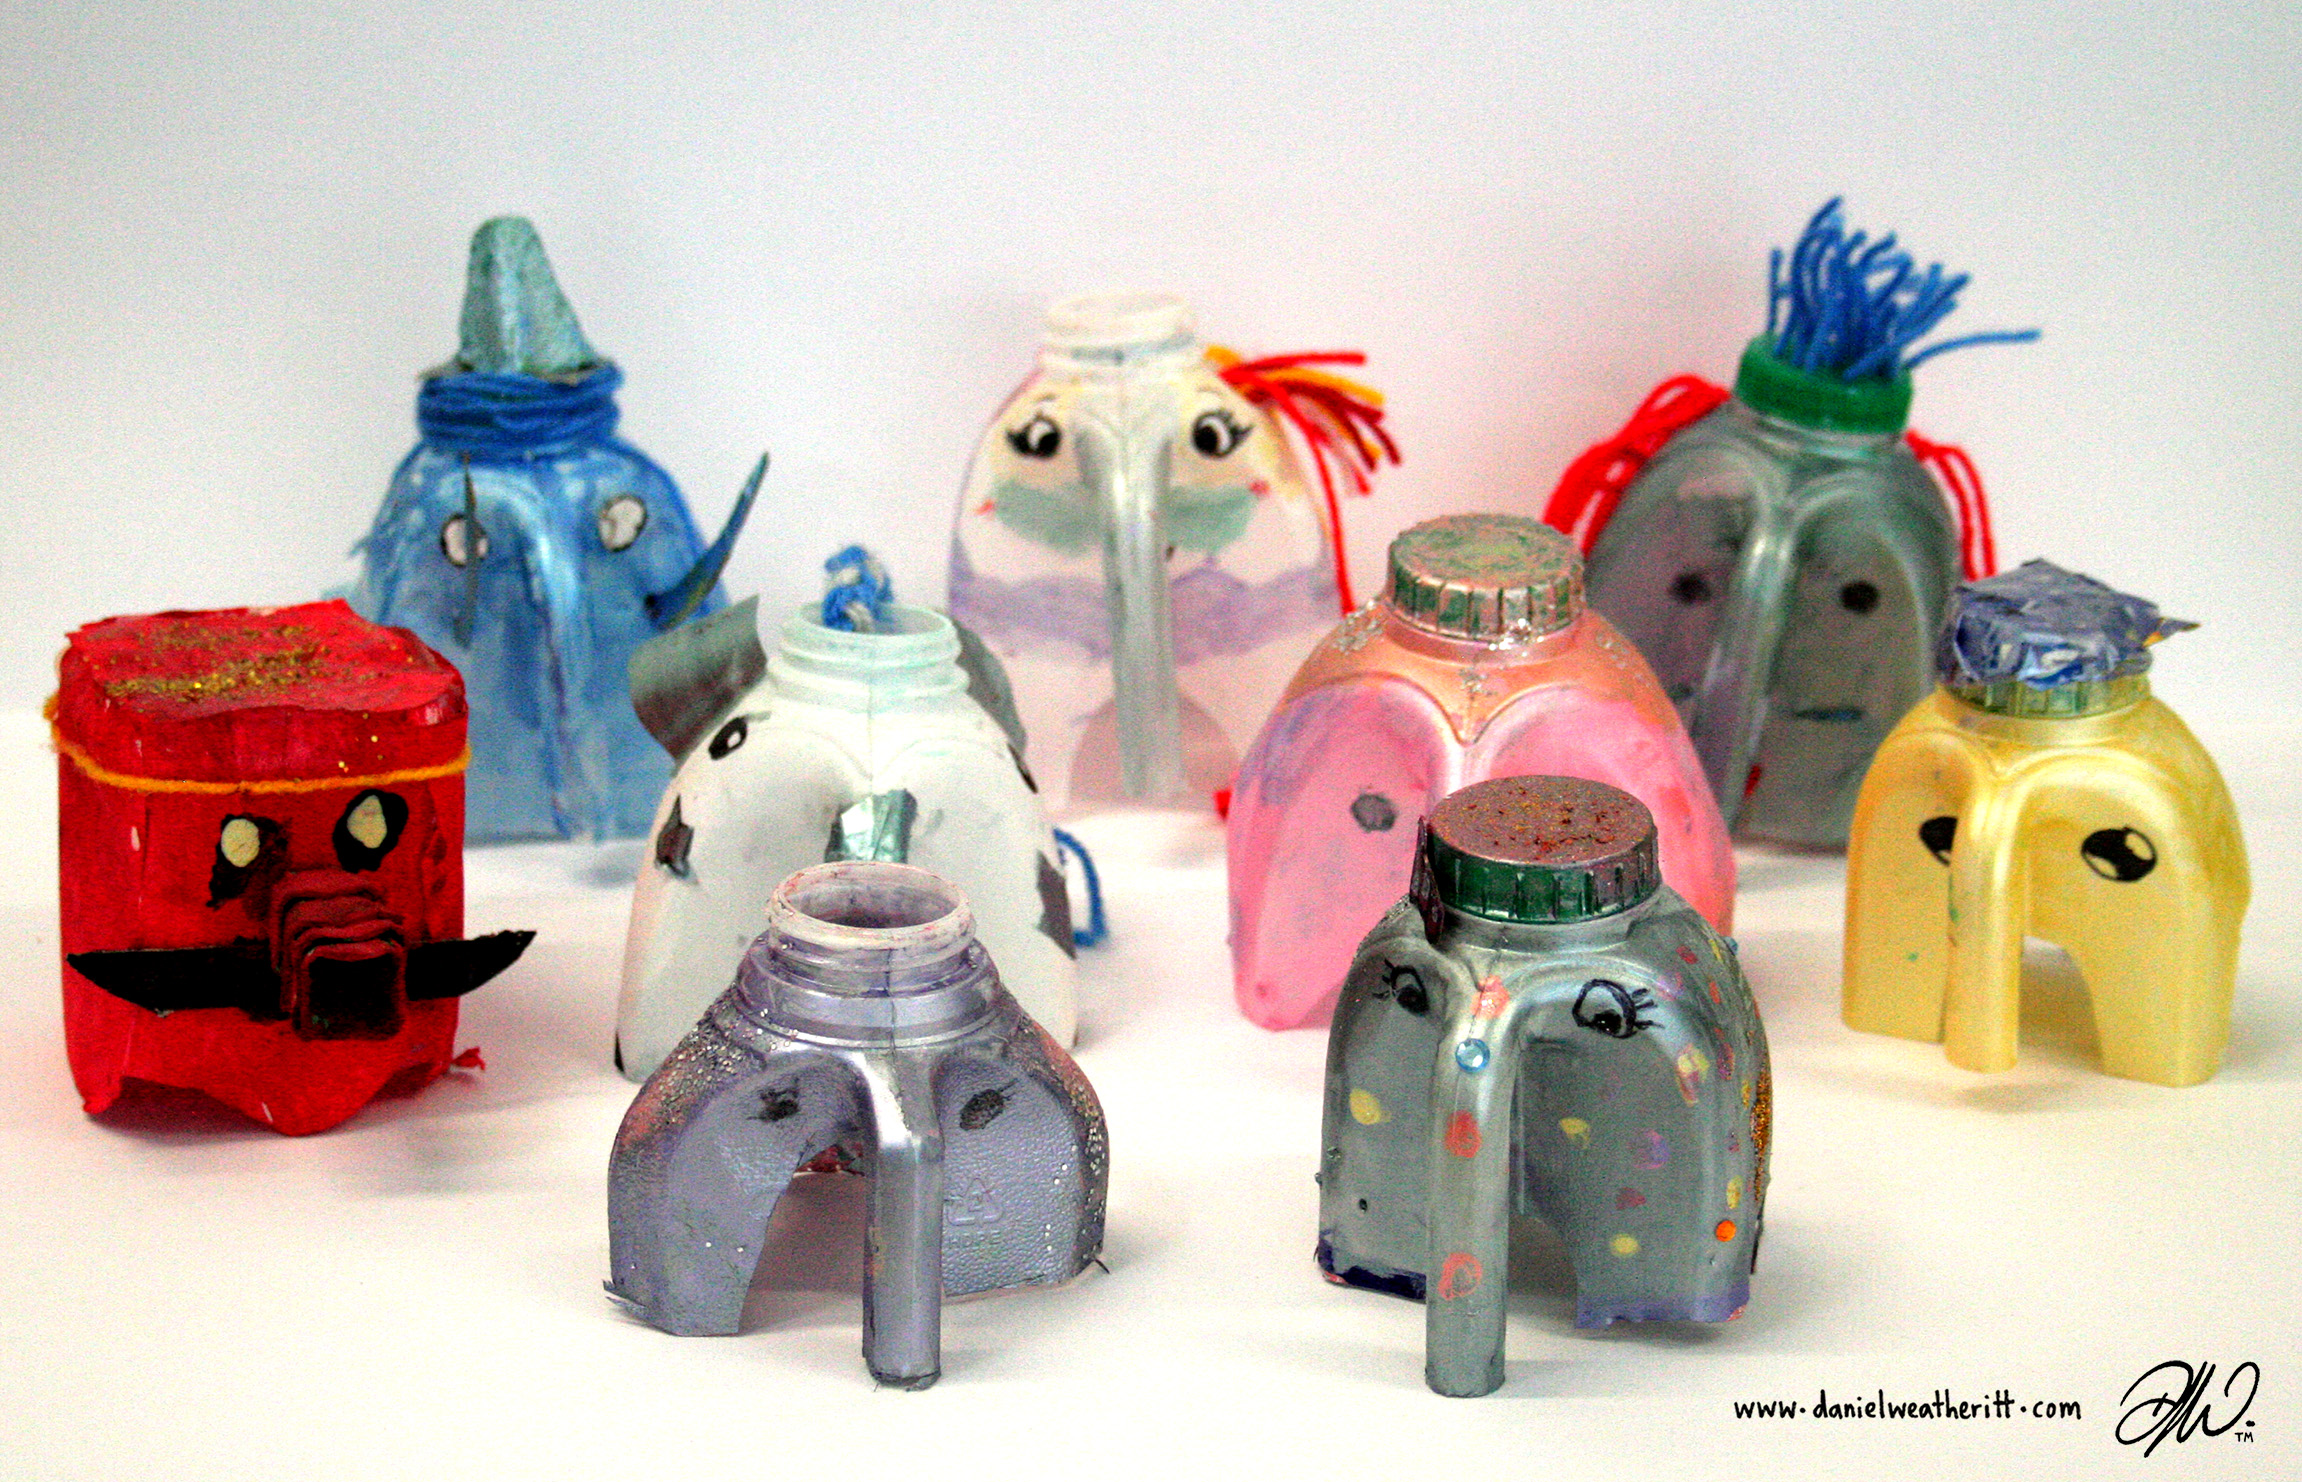 <b>Recycled Junk Elephant Sculptures</b> - by Cragside Primary School Pupils - 3 of 4